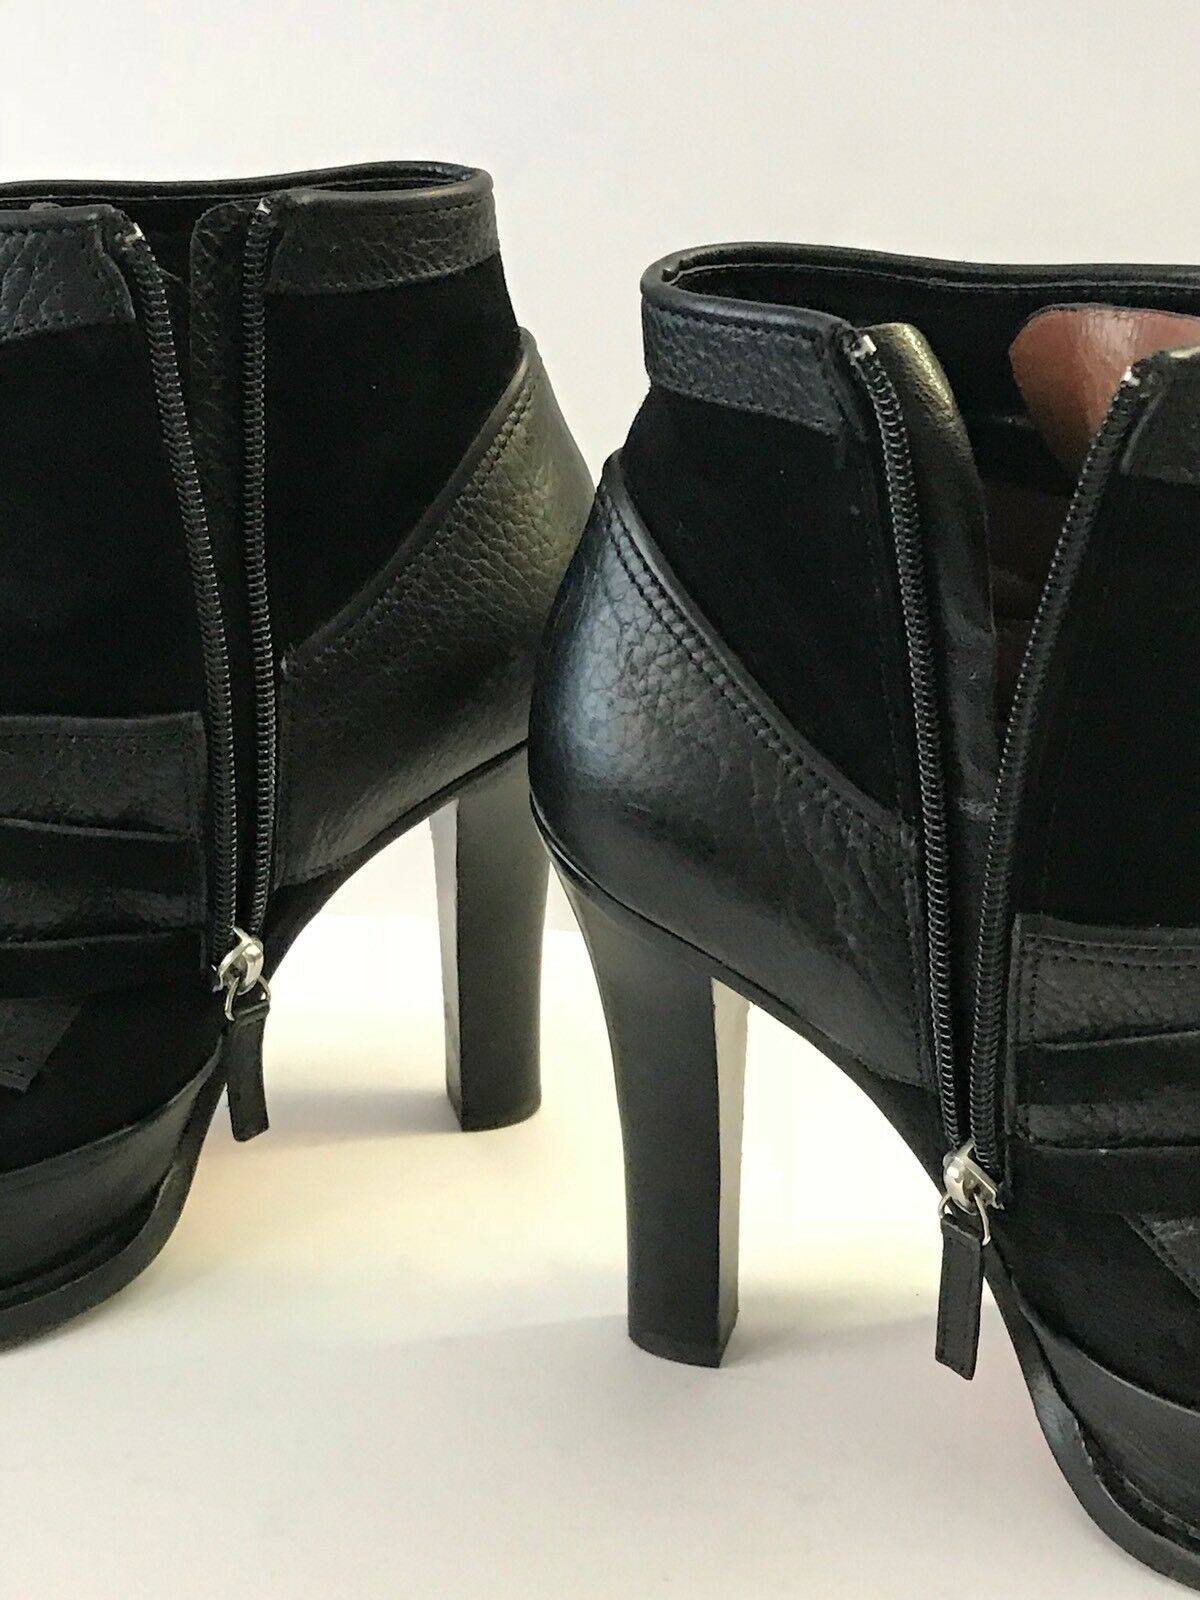 TABITHA SIMMONS Size 39 9 / 39 Size Nero Suede Pelle Platform Ankle Stivali Italy 7f1789